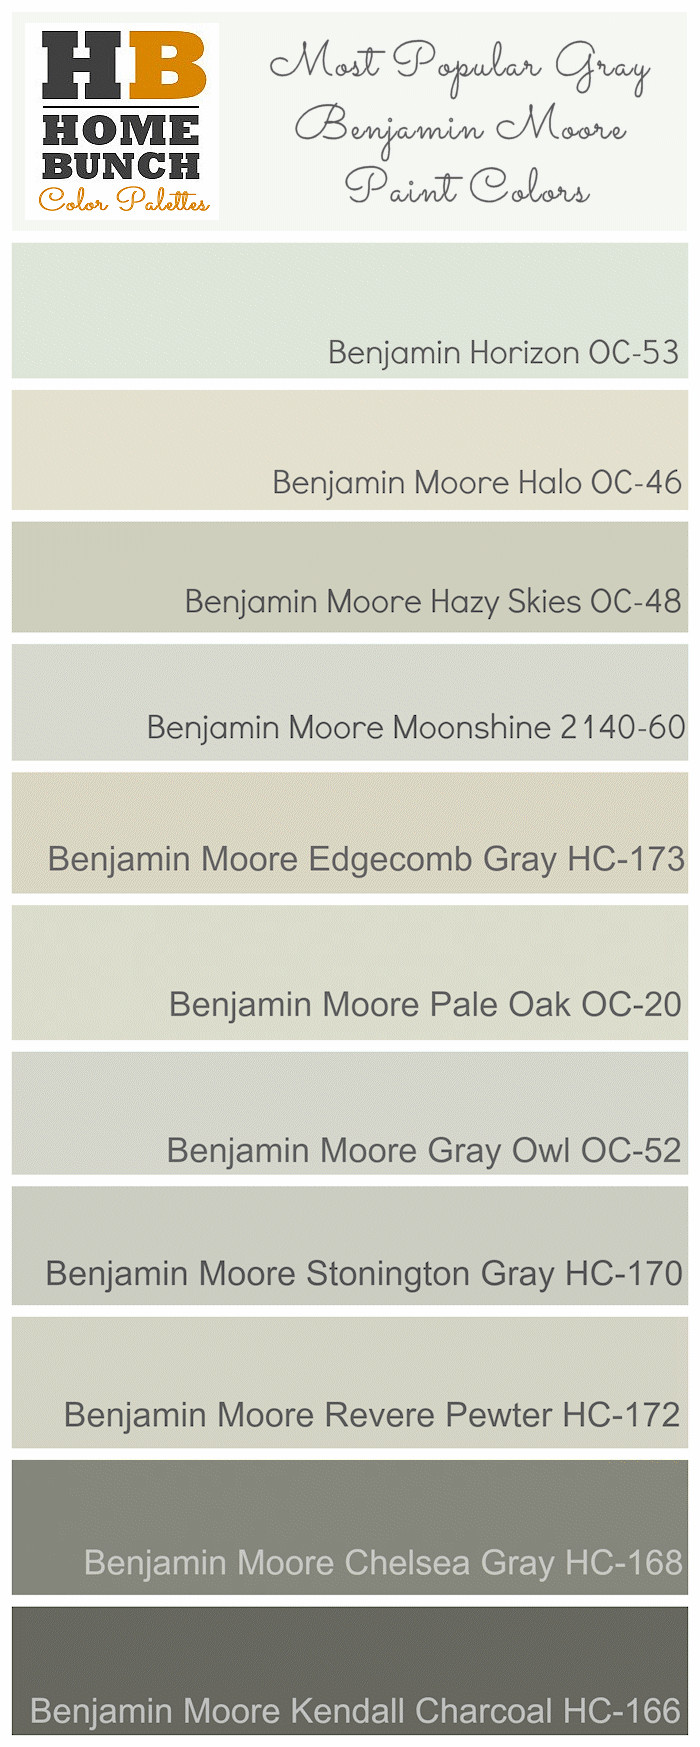 The Gallery For Benjamin Moore Moonshine 2140 60: great paint colors